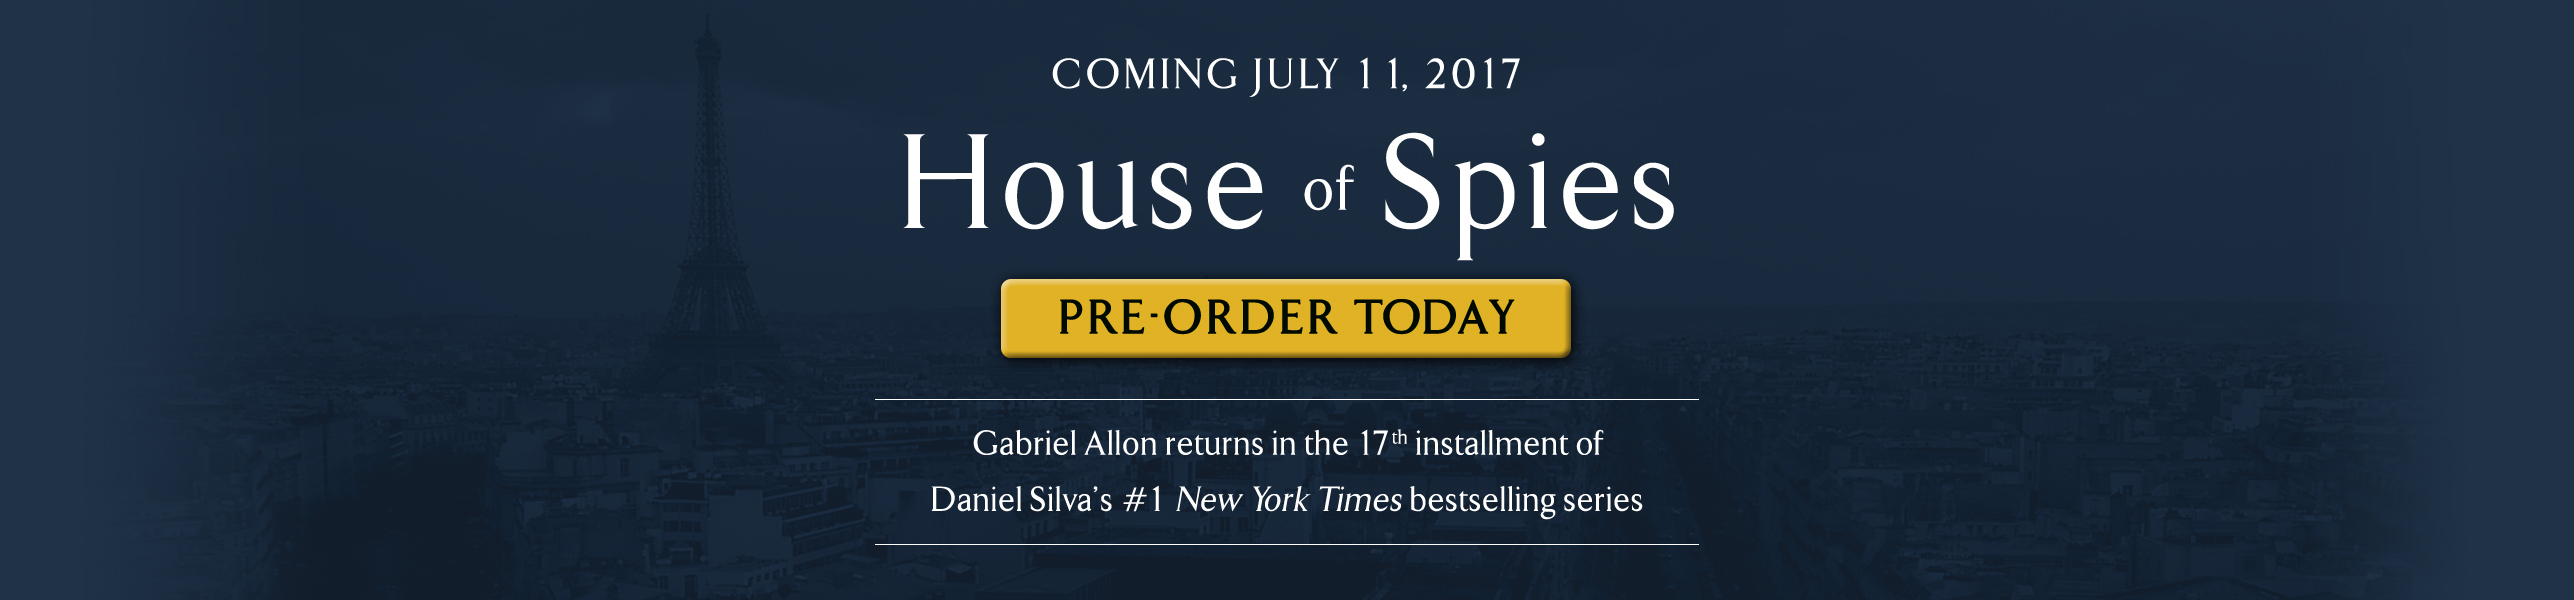 House of Spies, Coming July 11 2017